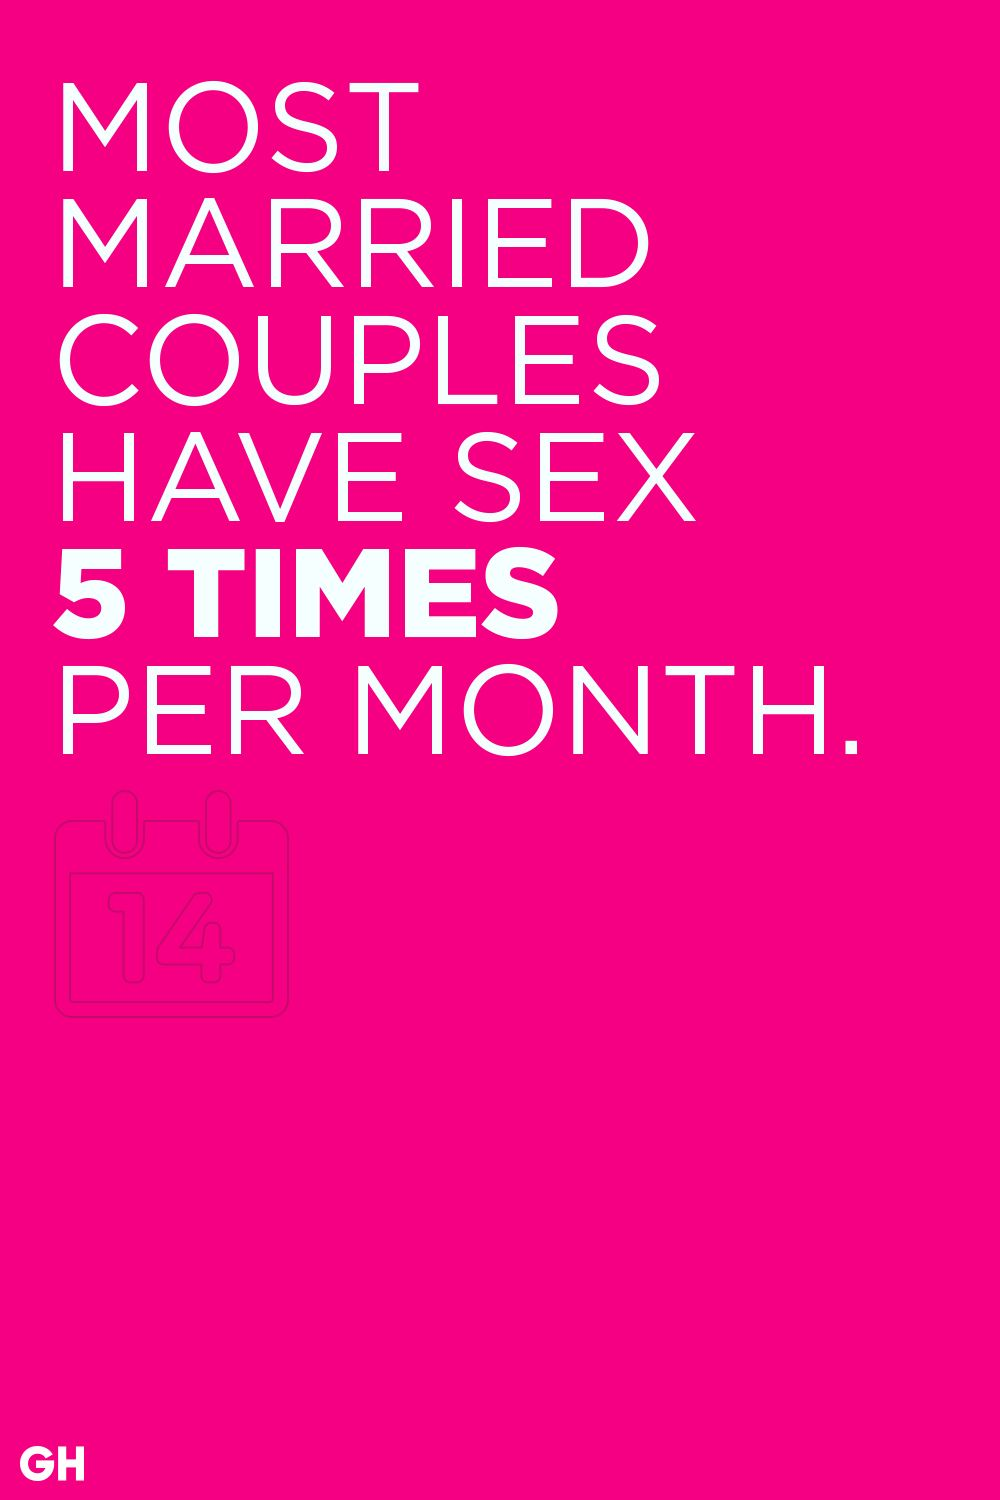 How often do unmarried couples have sex